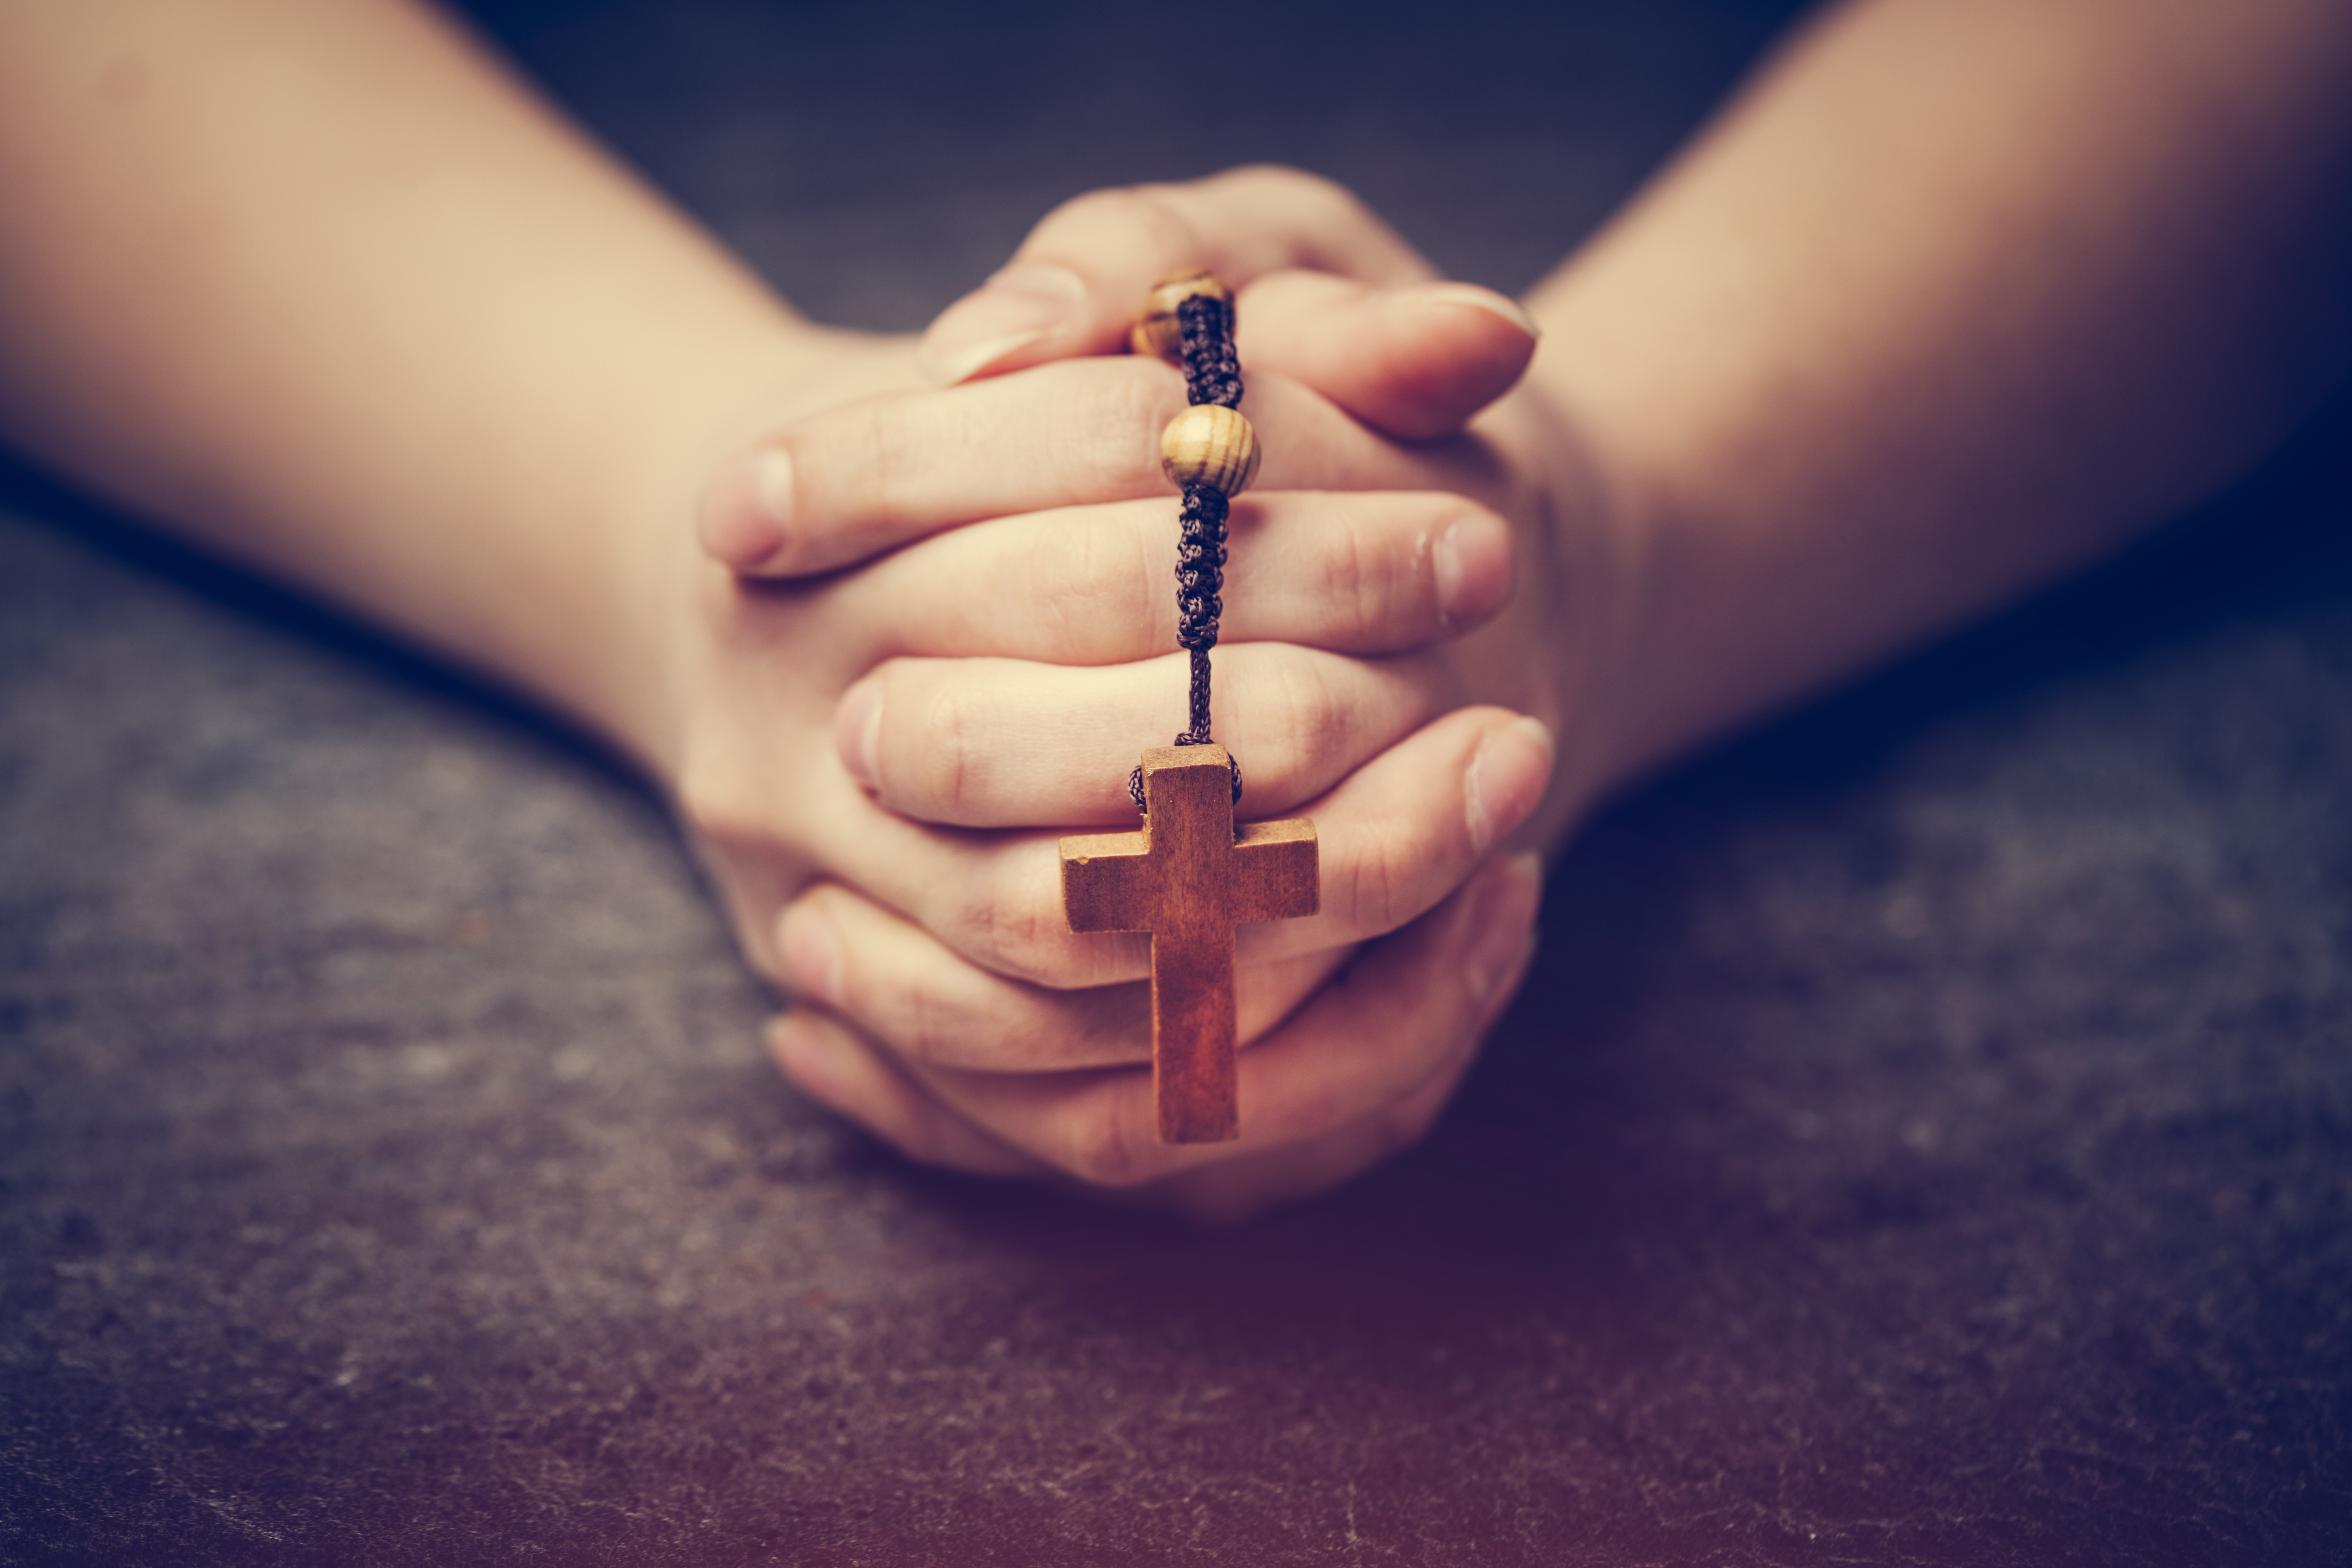 woman-praying-with-a-rosary-UVTDBAM